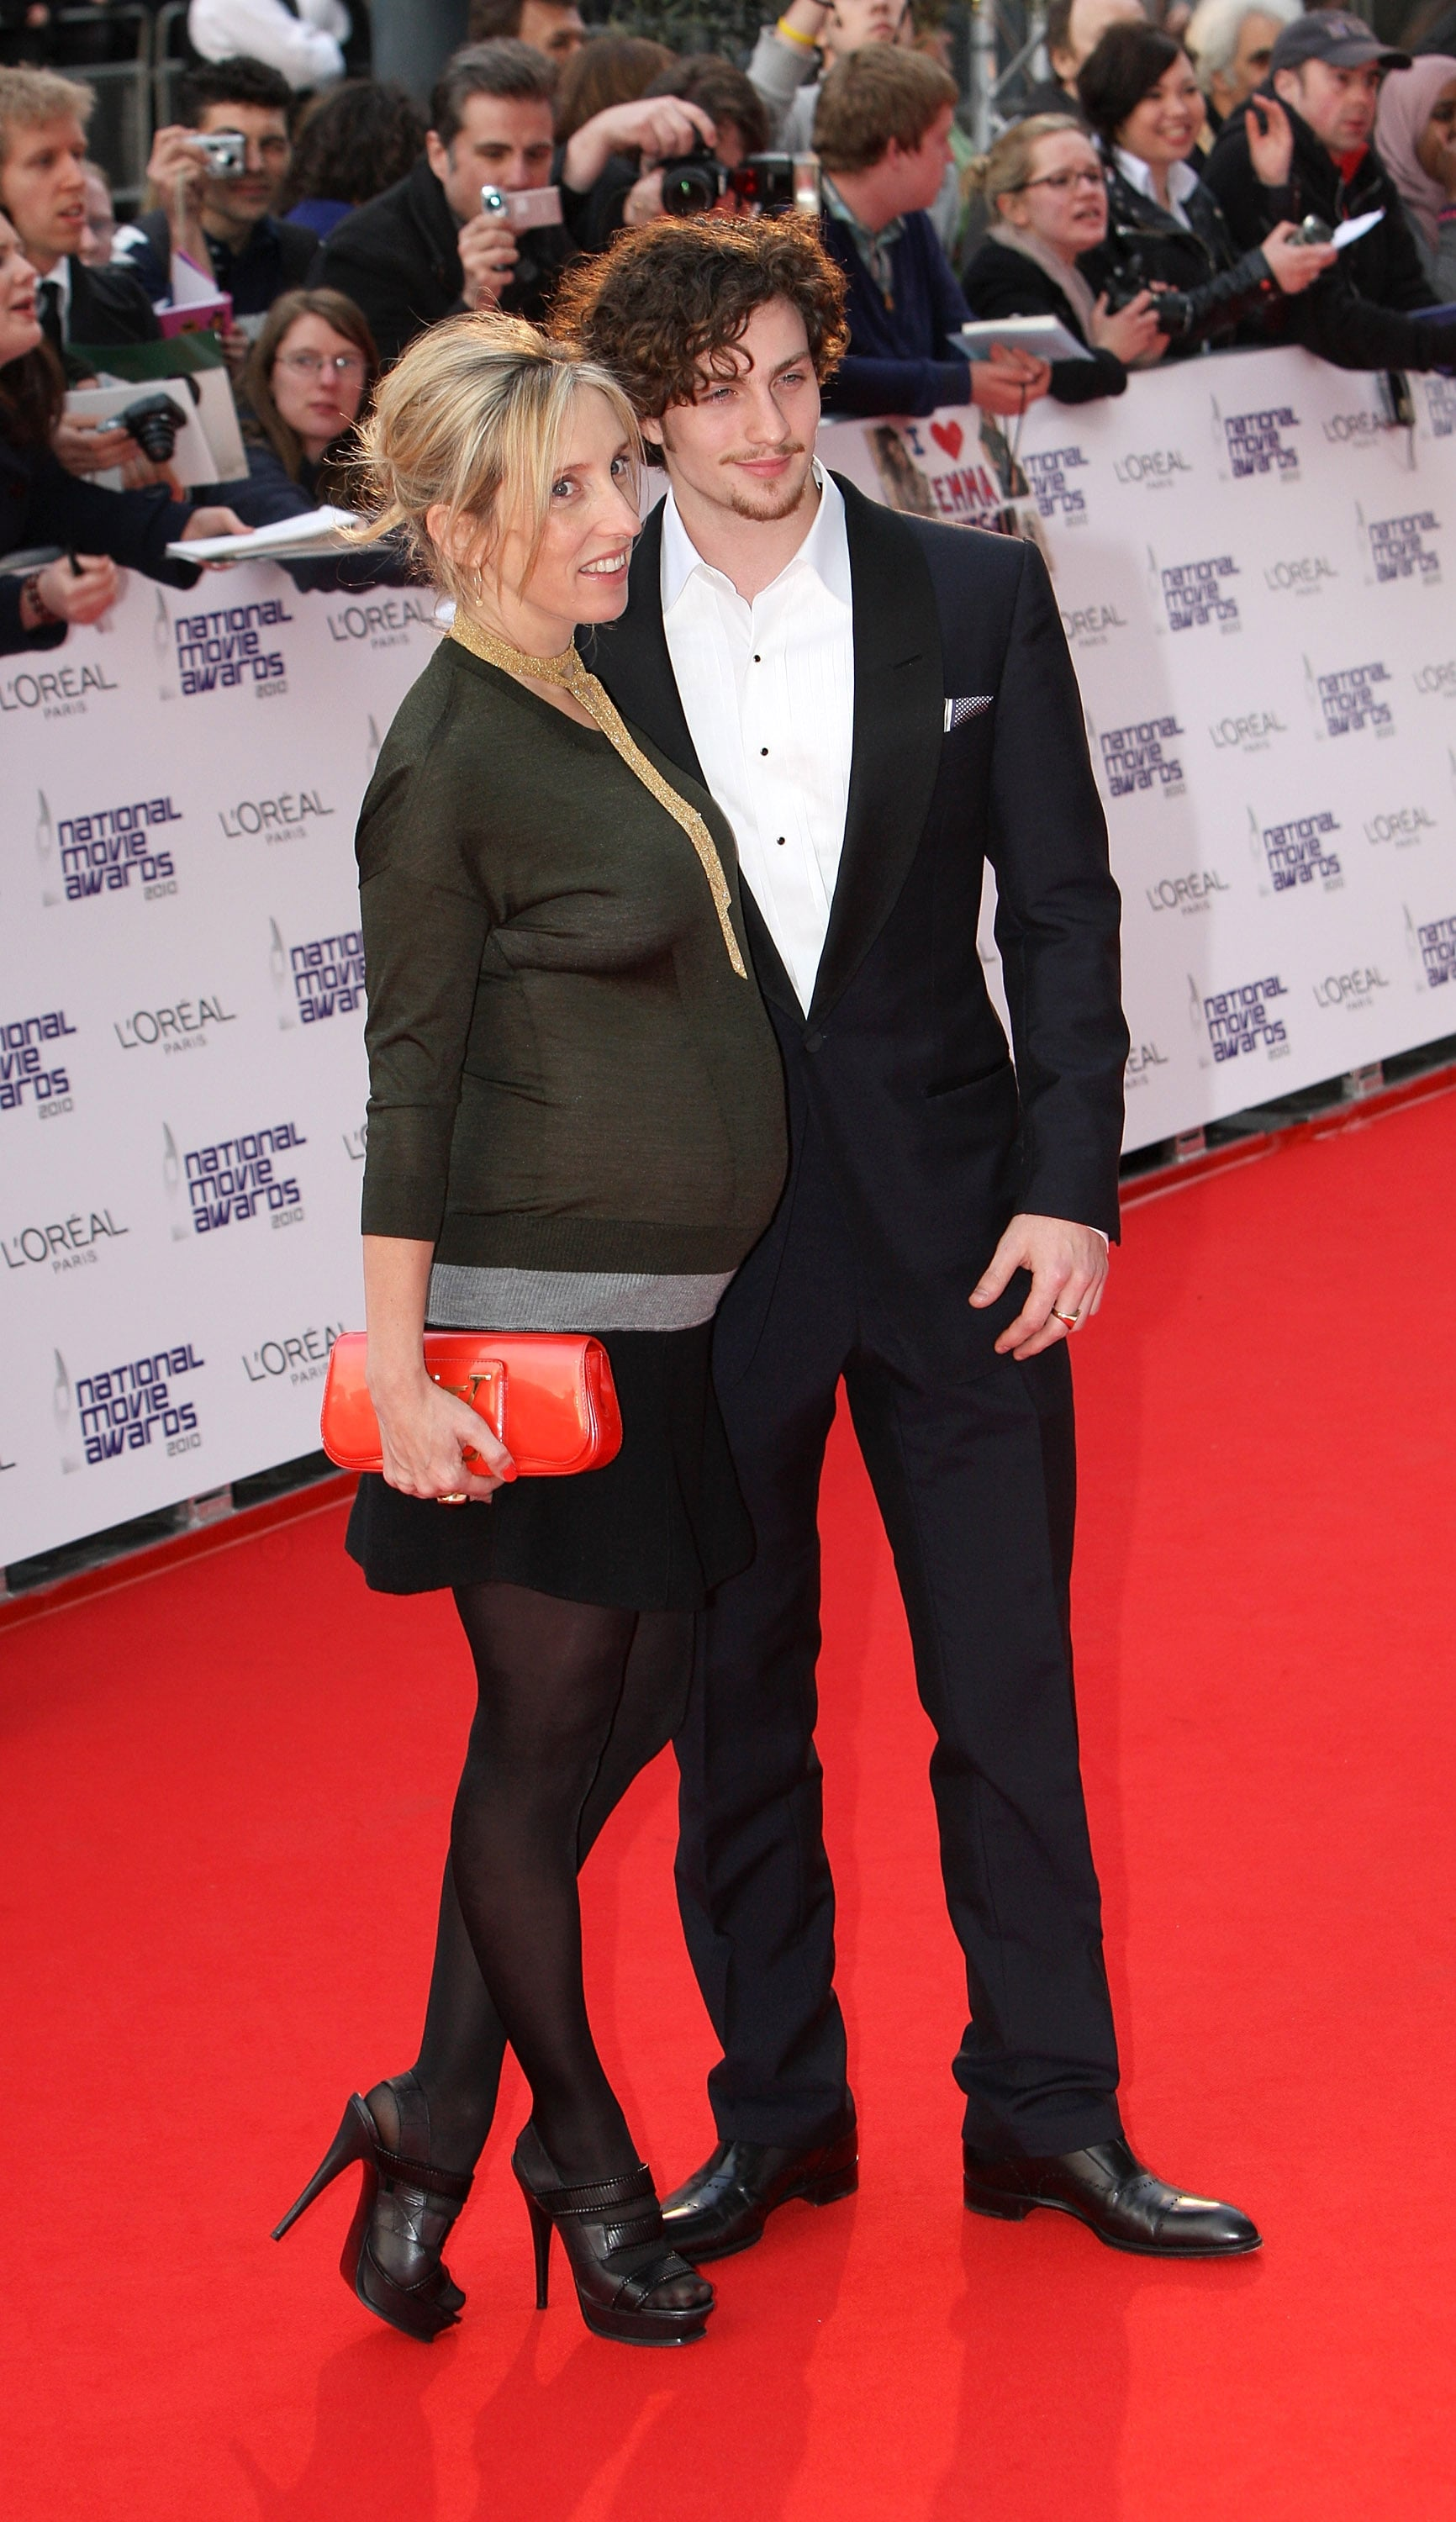 Pictures Of Pregnant Sam Taylor Wood And Her Fiance Aaron